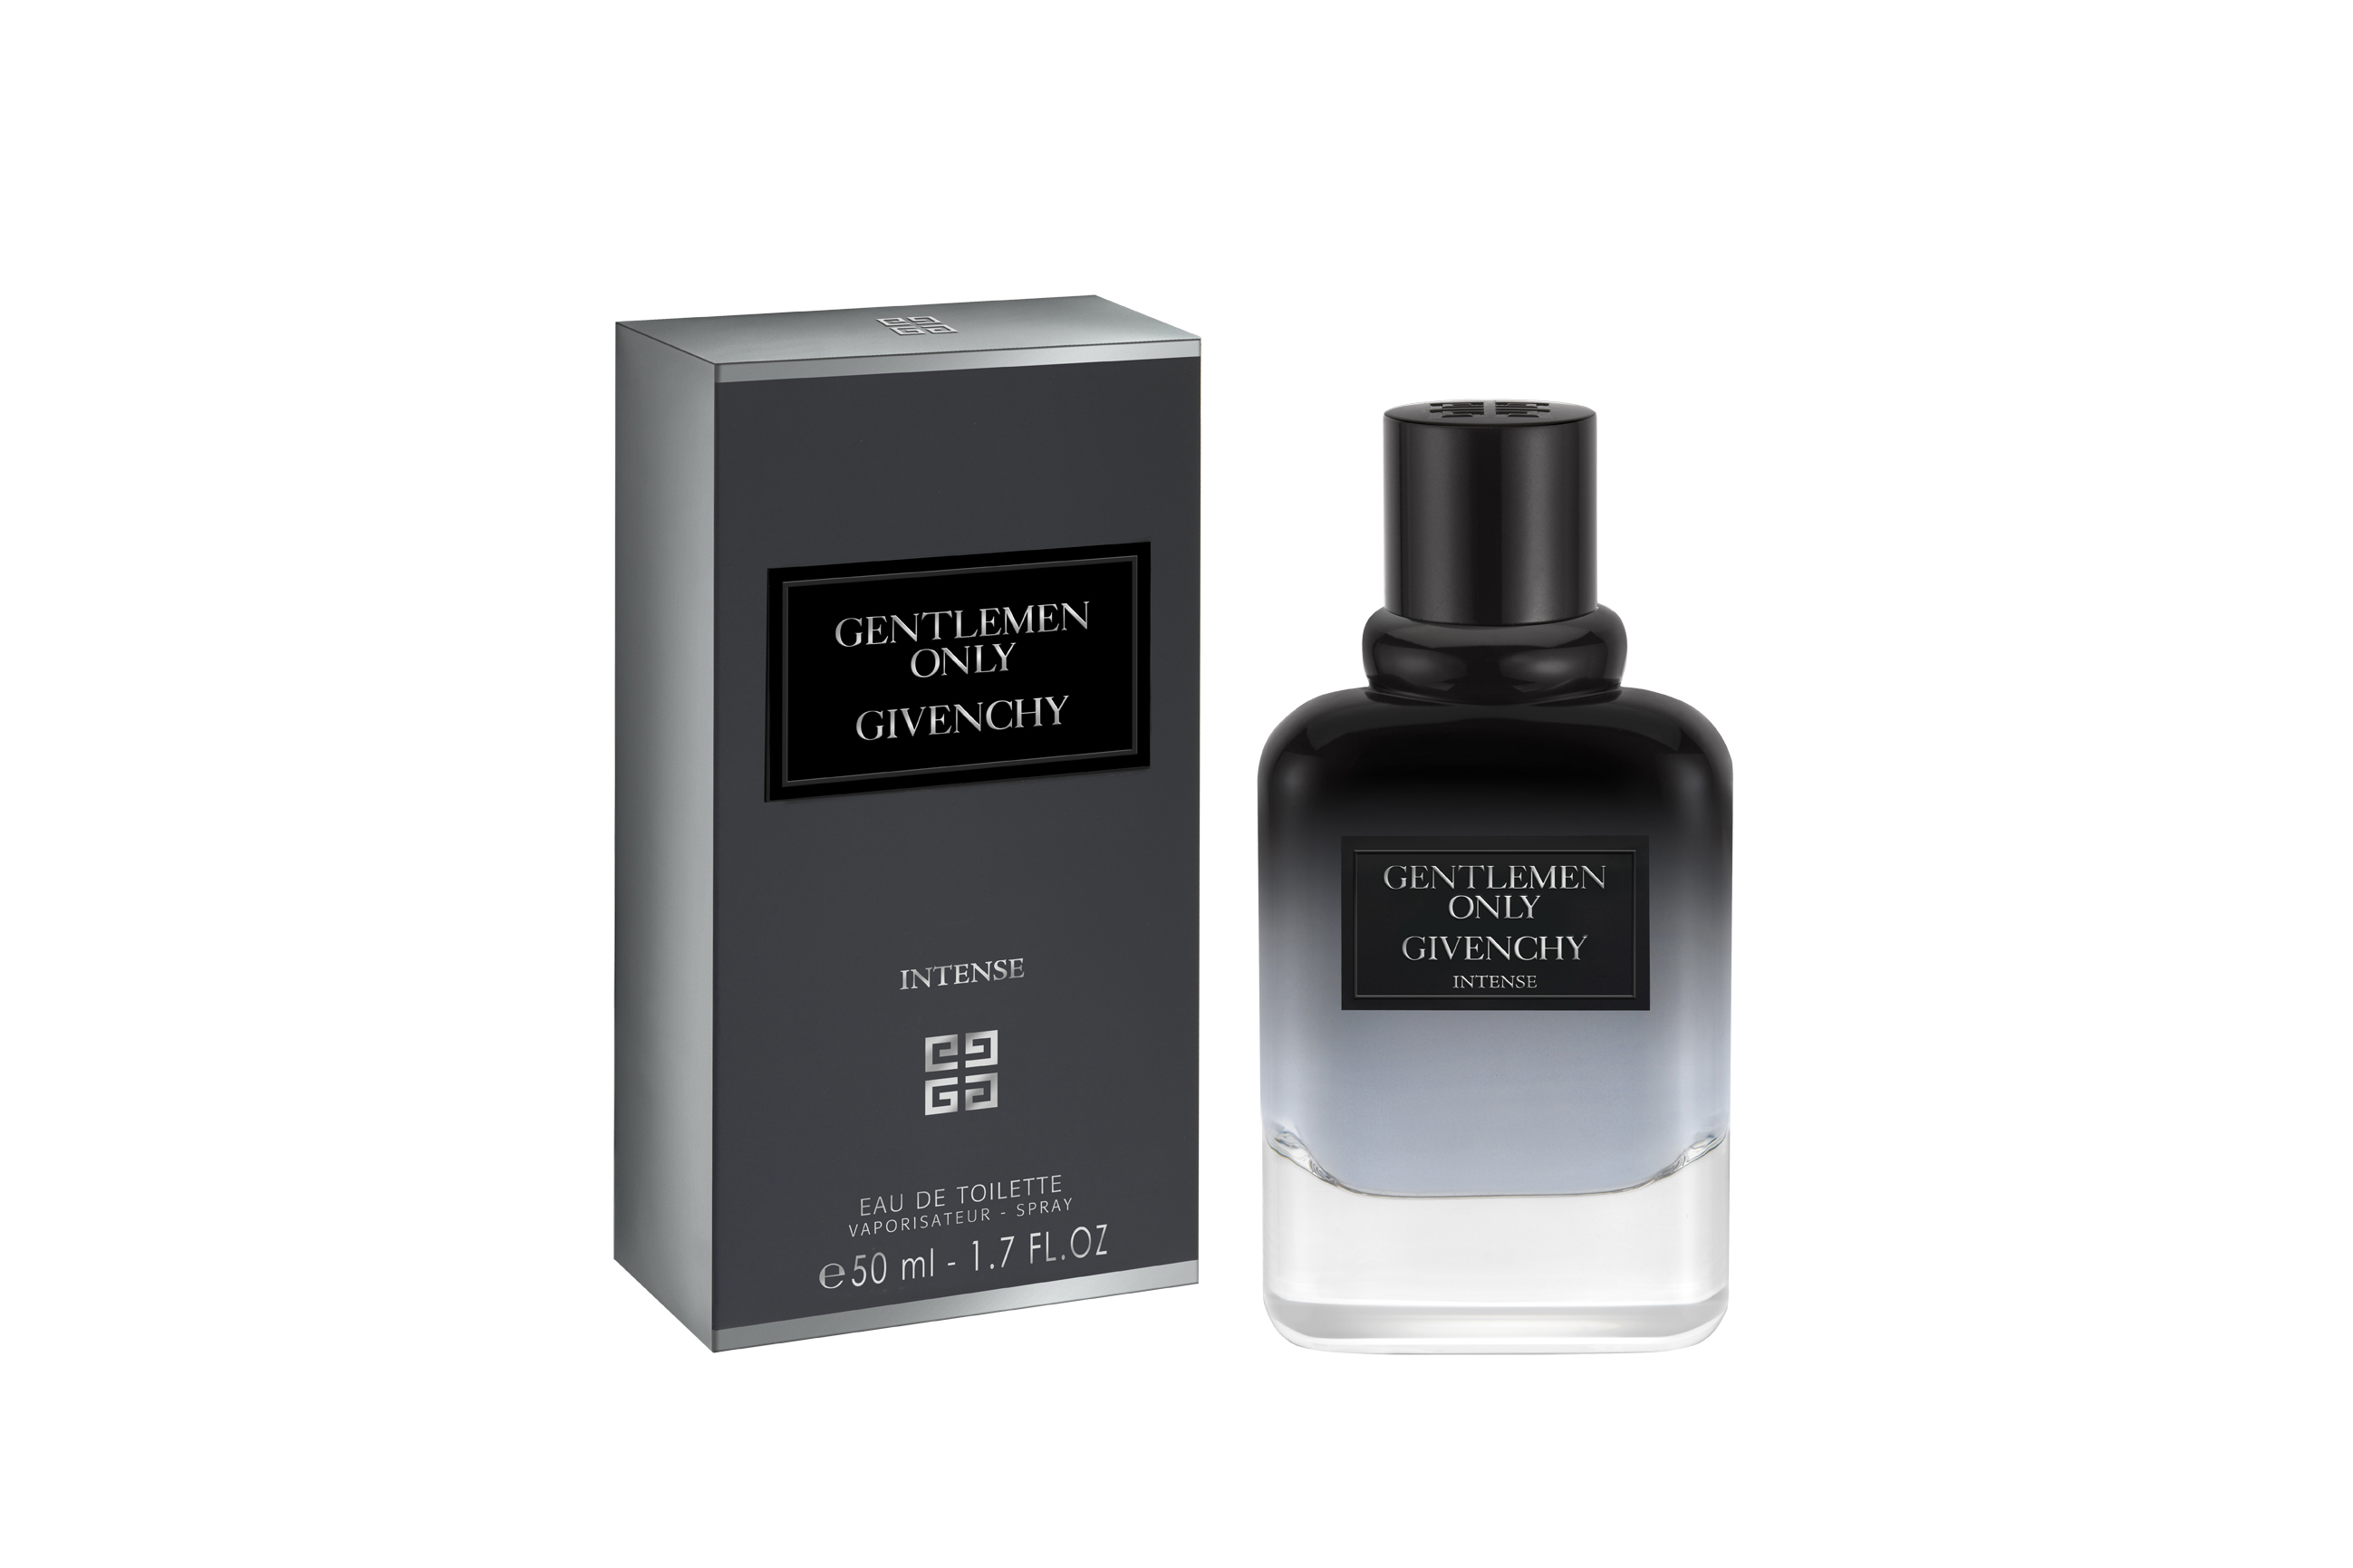 Gentlemen Only Intense Givenchy